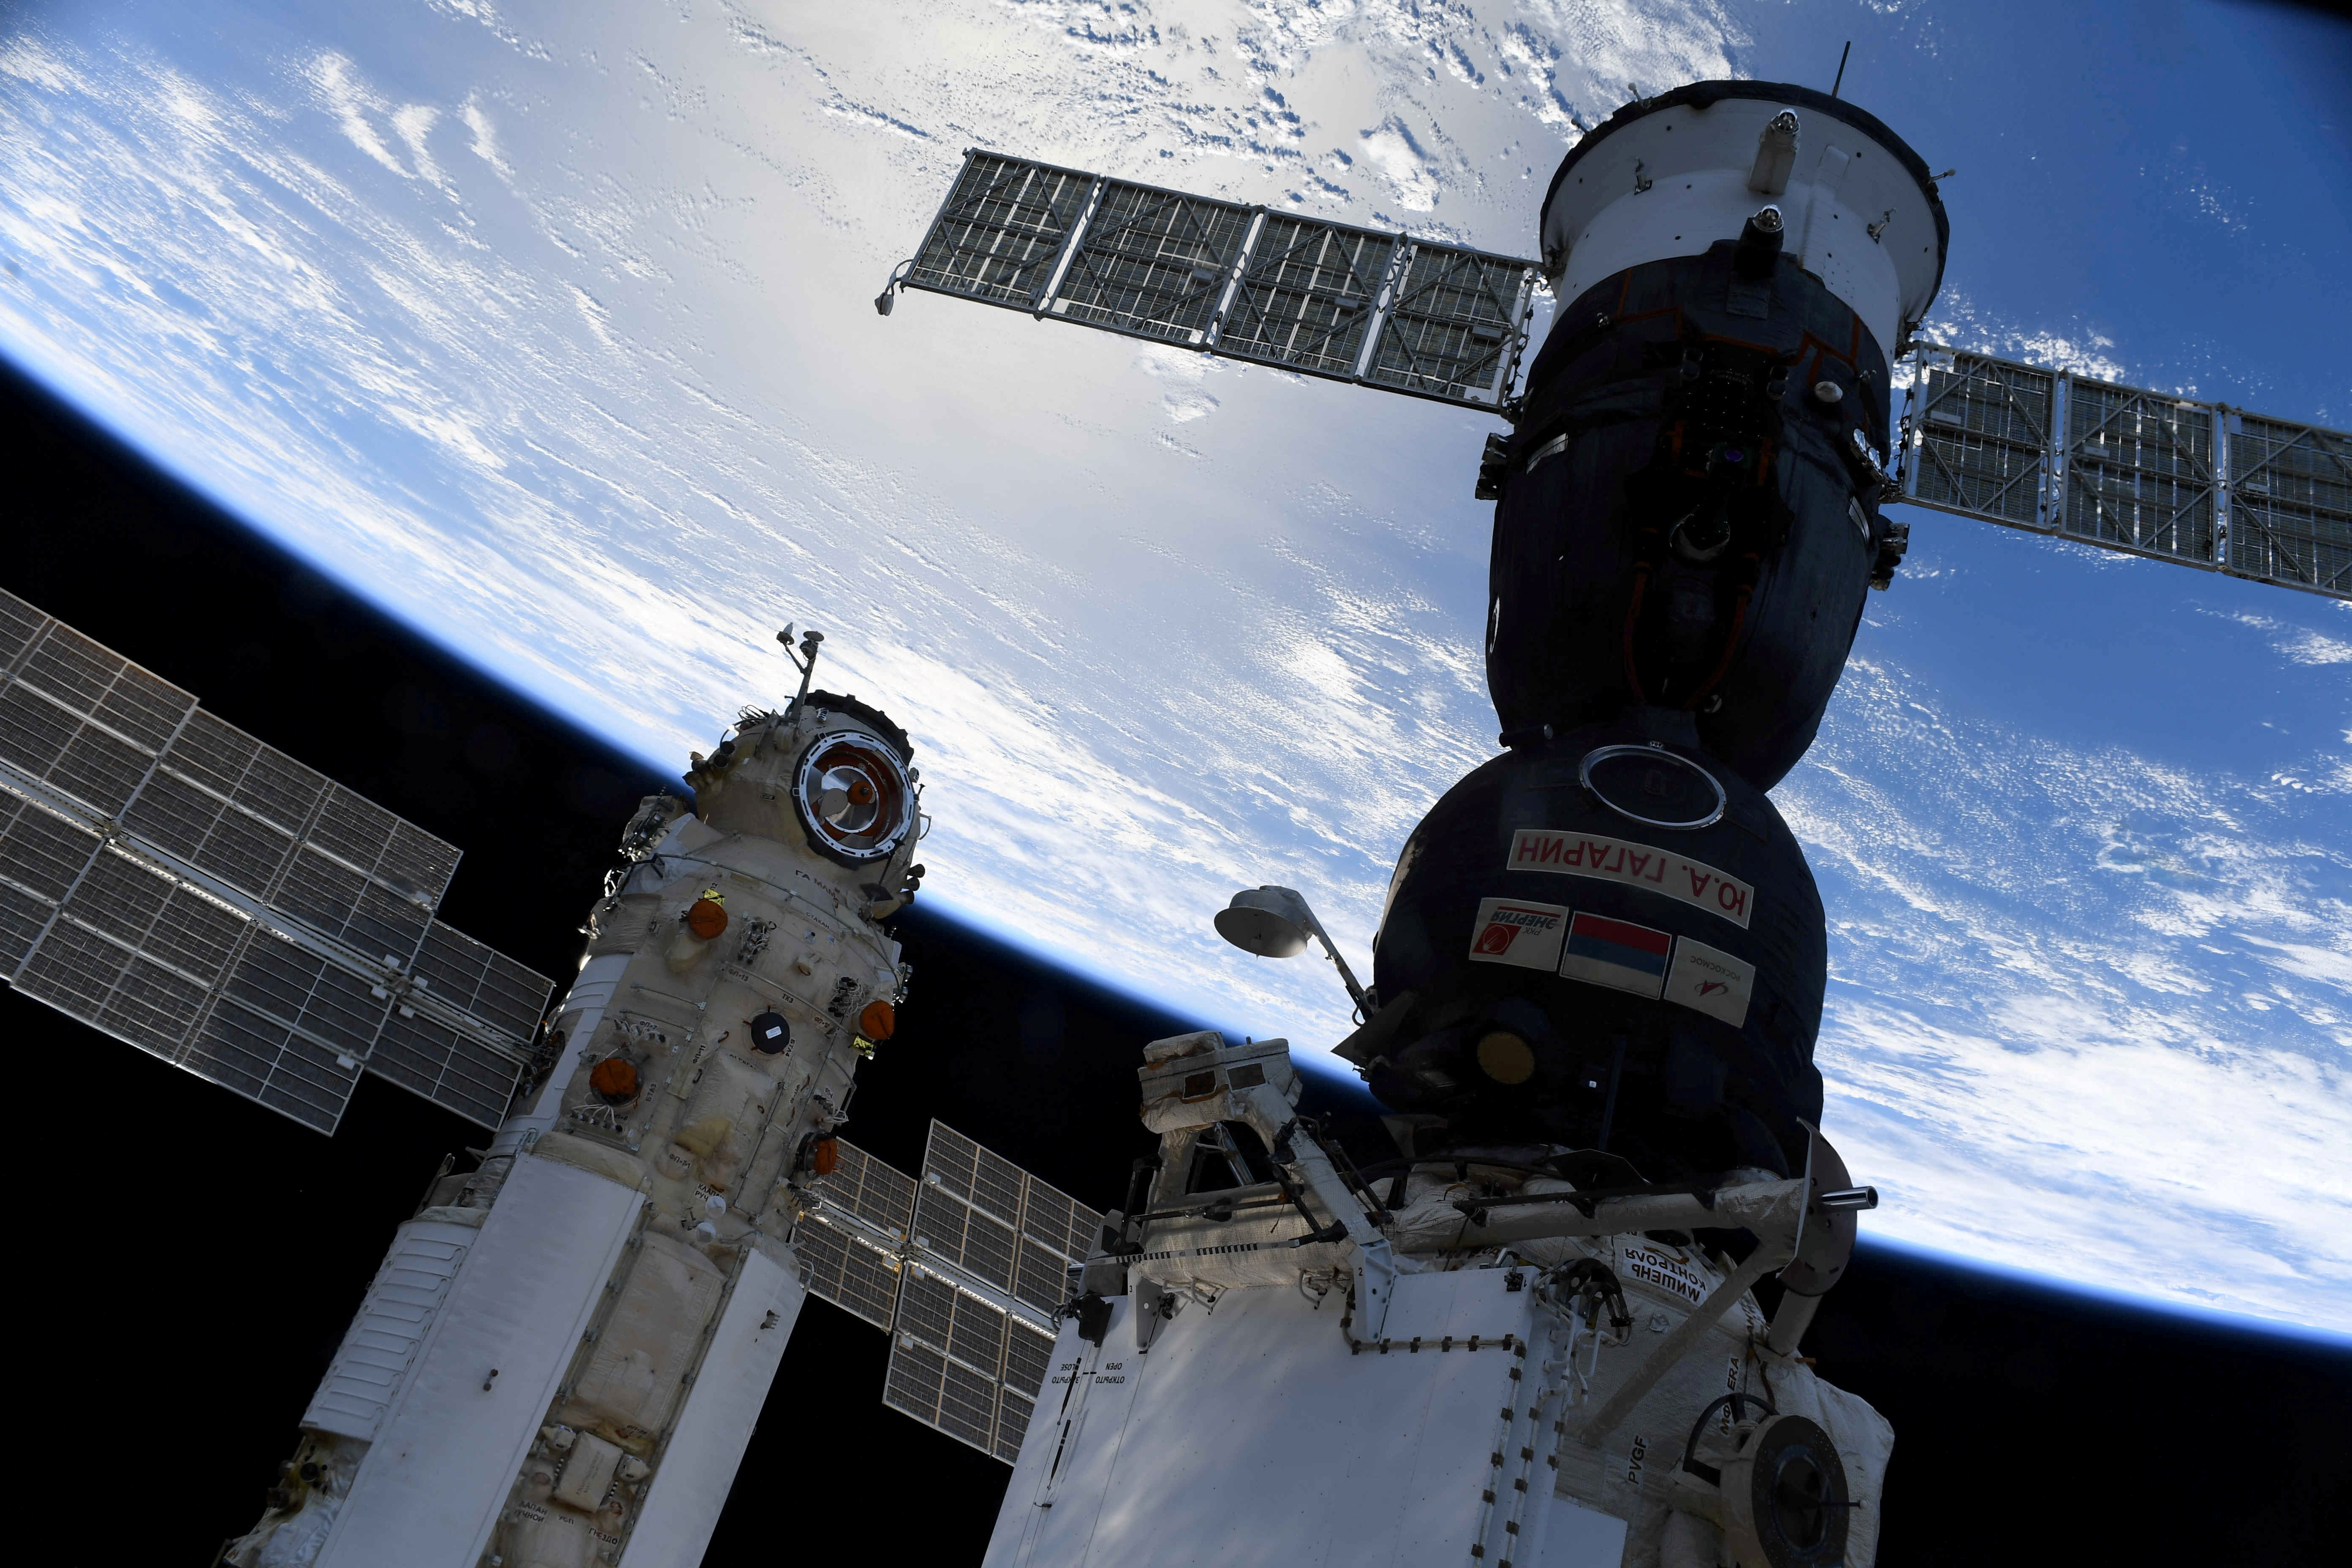 The Nauka (Science) Multipurpose Laboratory Module is seen docked to the International Space Station (ISS) next to next to Soyuz MS-18 spacecraft on July 29, 2021. Picture taken July 29, 2021.  Oleg Novitskiy/Roscosmos/Handout via REUTERS